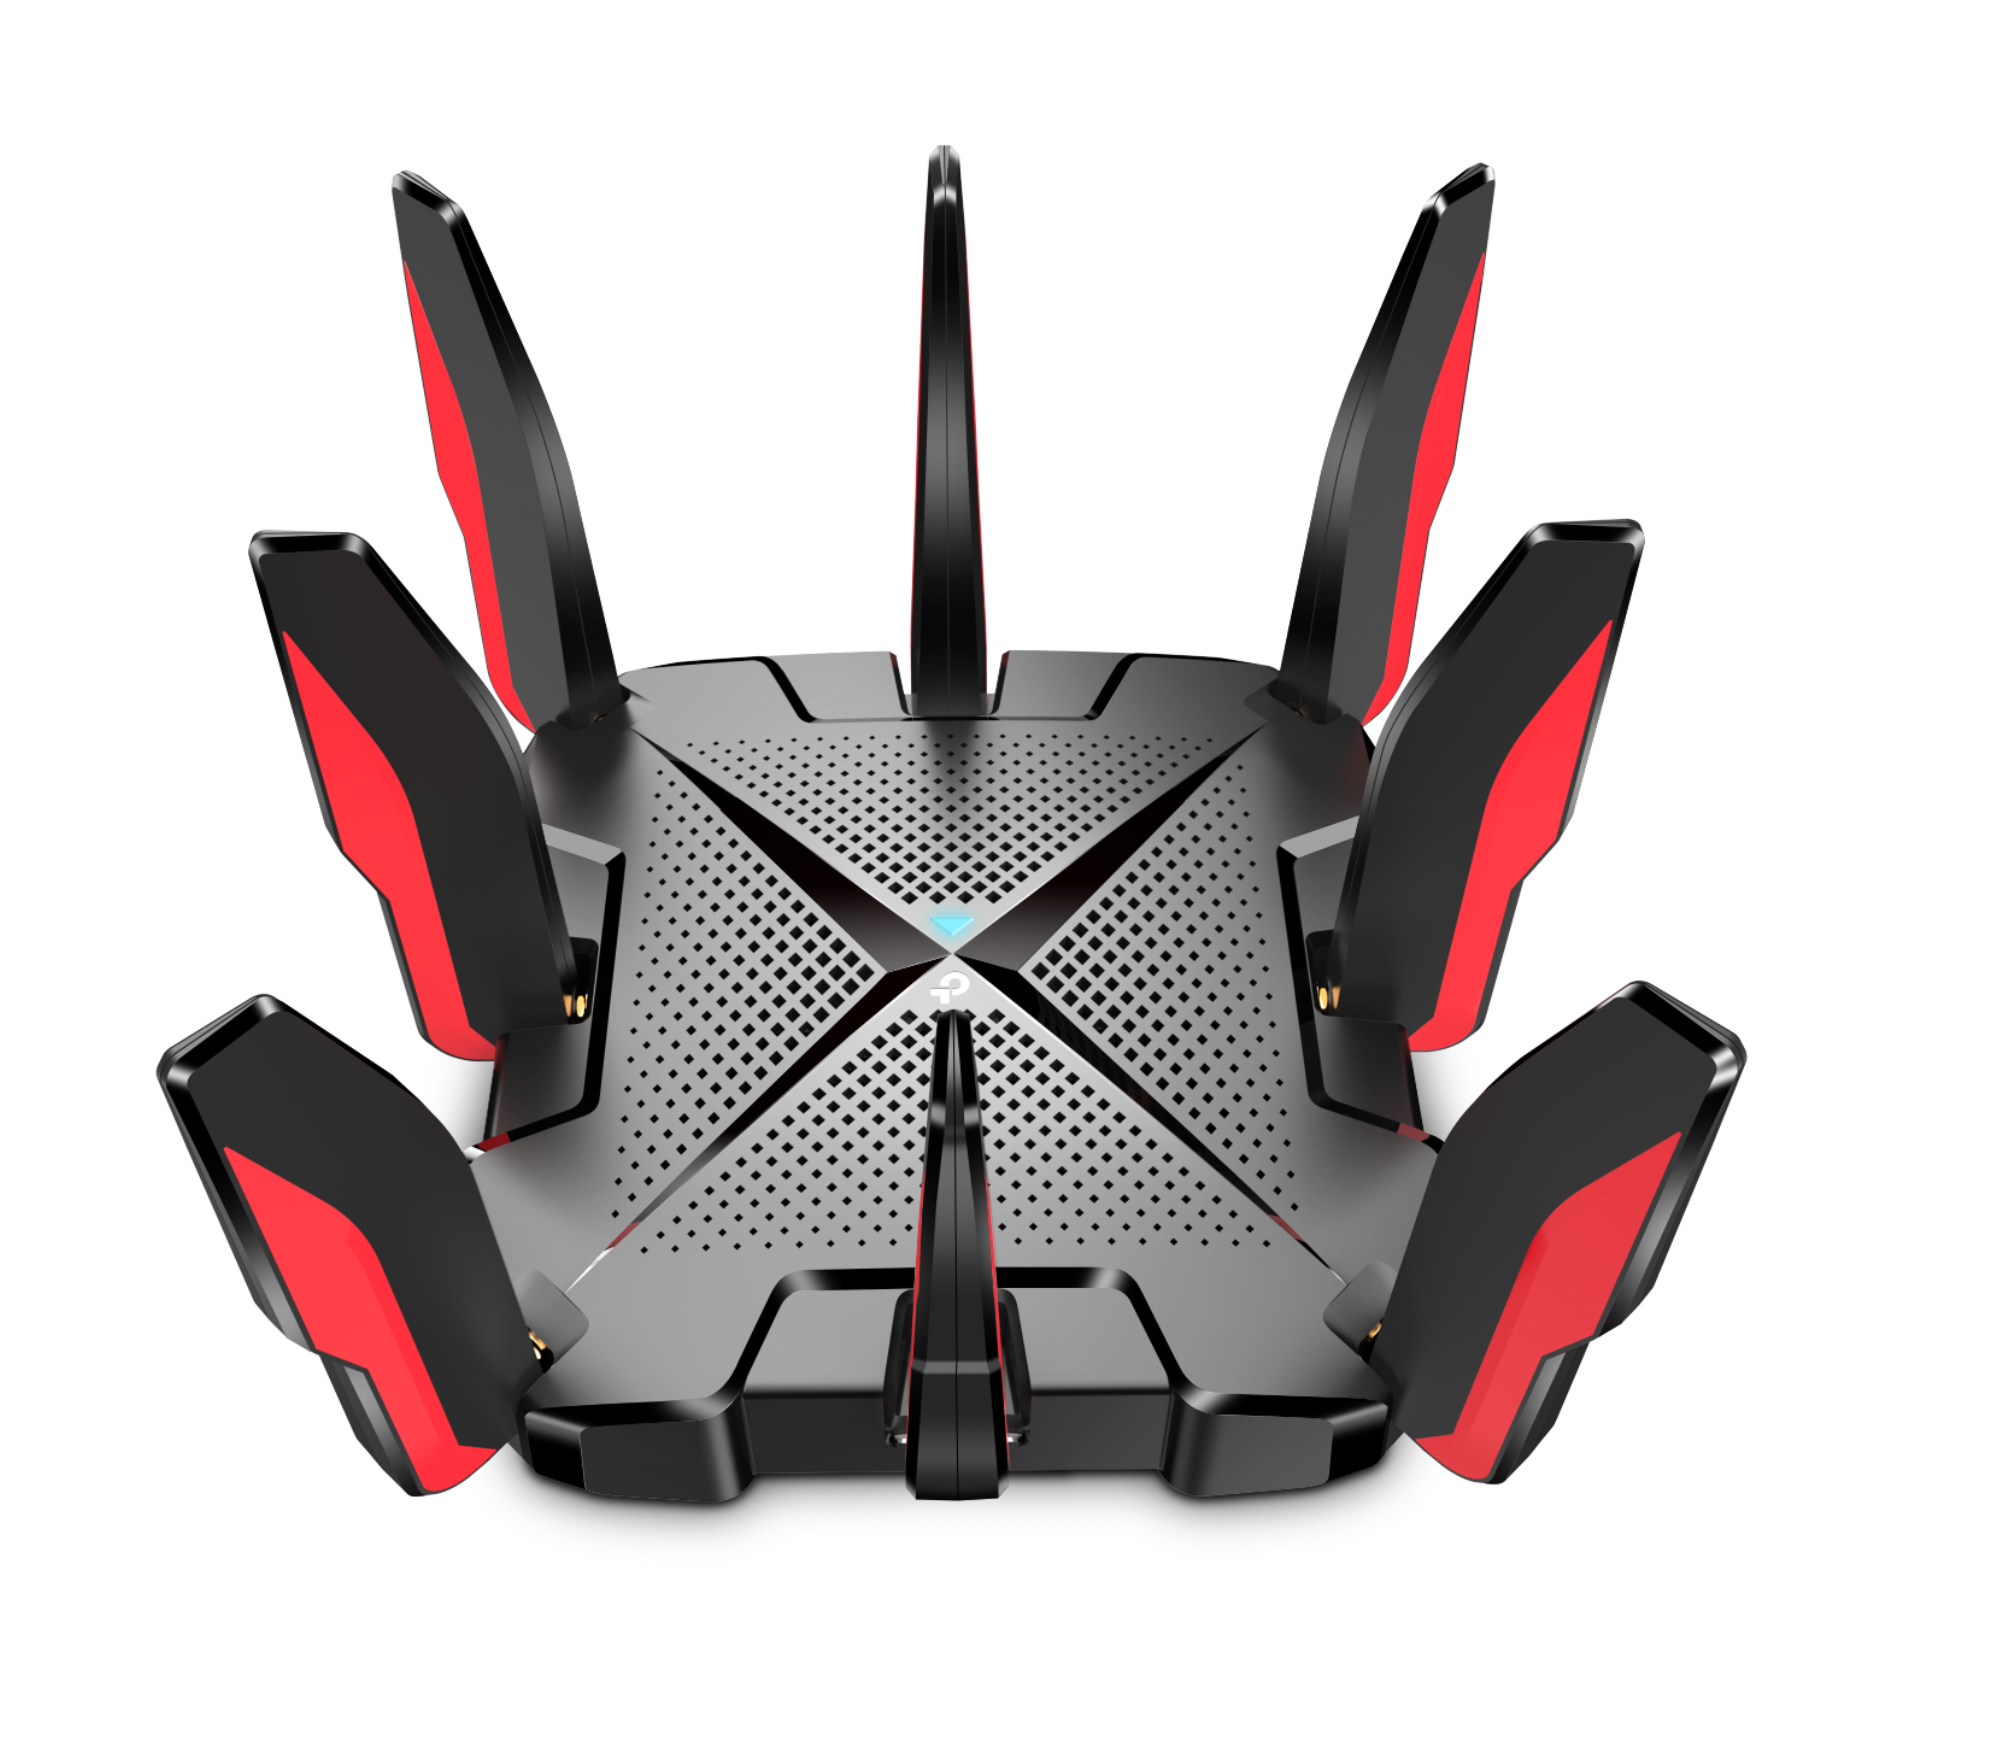 TP-Link Archer GX90 Wi-Fi 6 gaming router